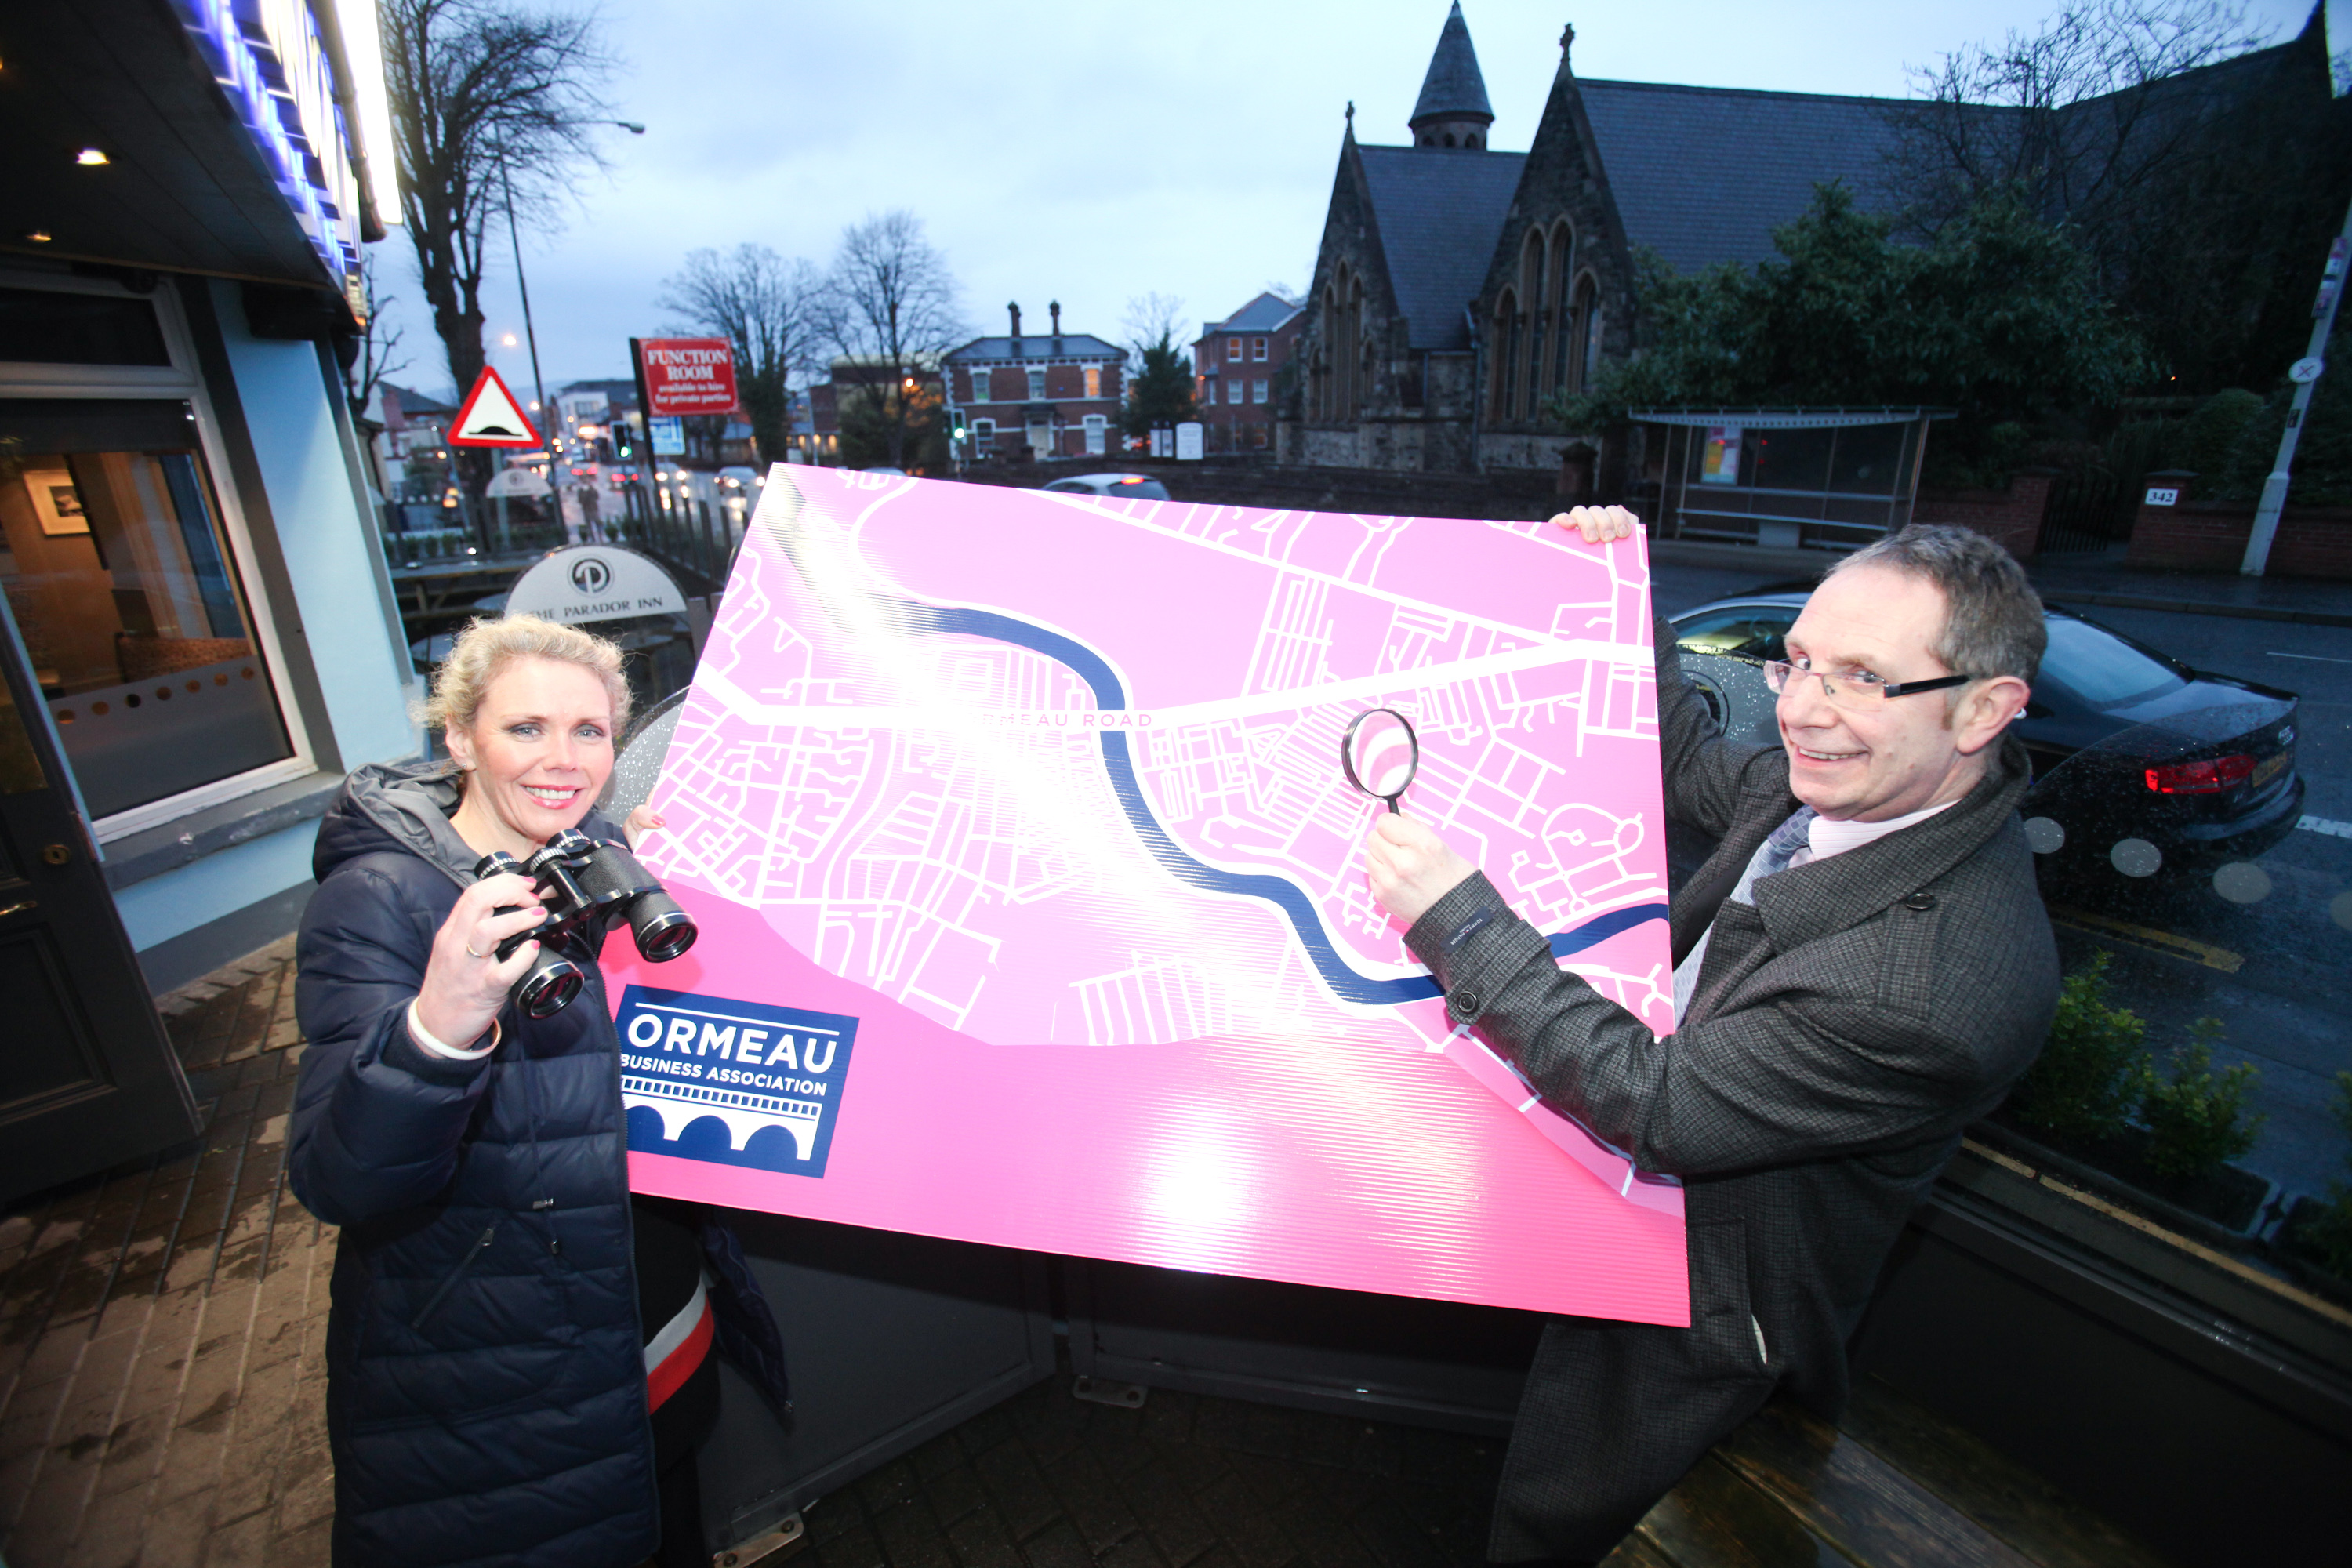 Ormeau Business Association 'maps out' a bright new future